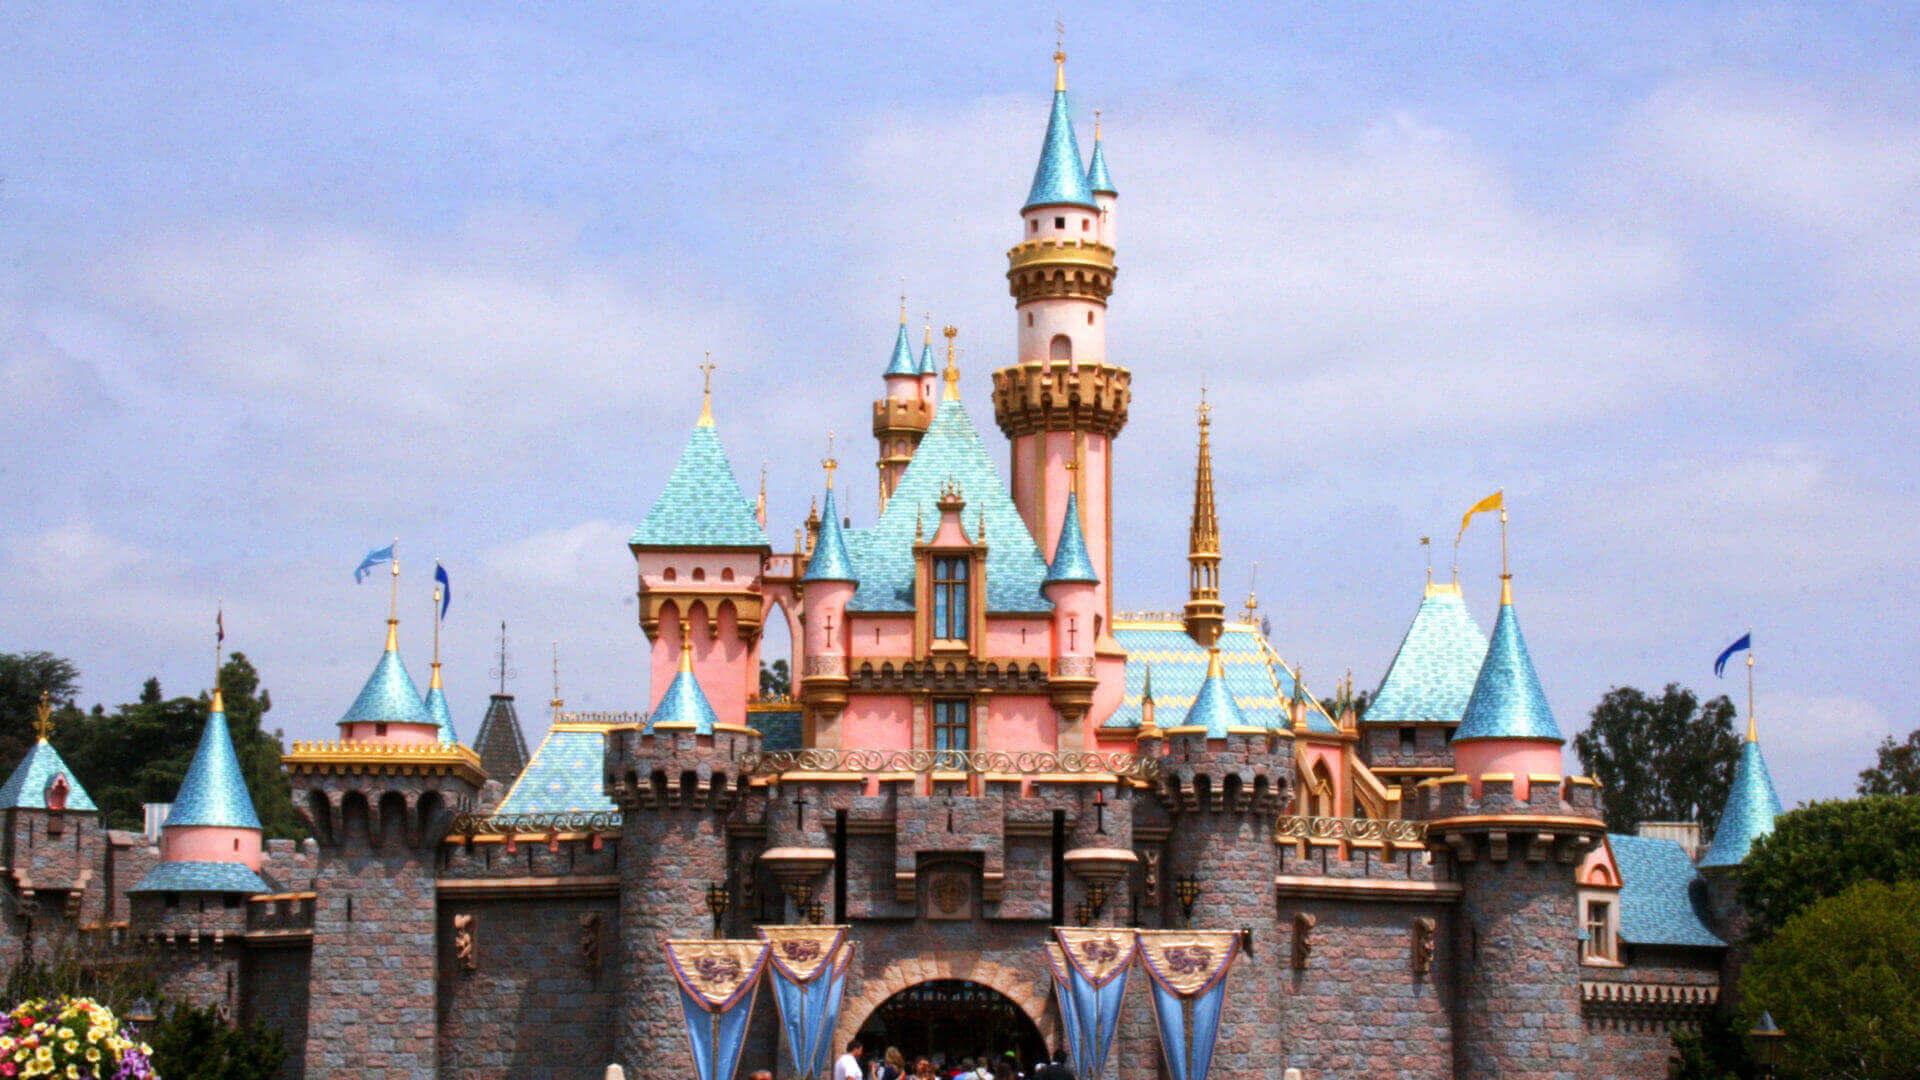 Disney To Staff Theme Parks With 3D Printed Robots? | All3DP